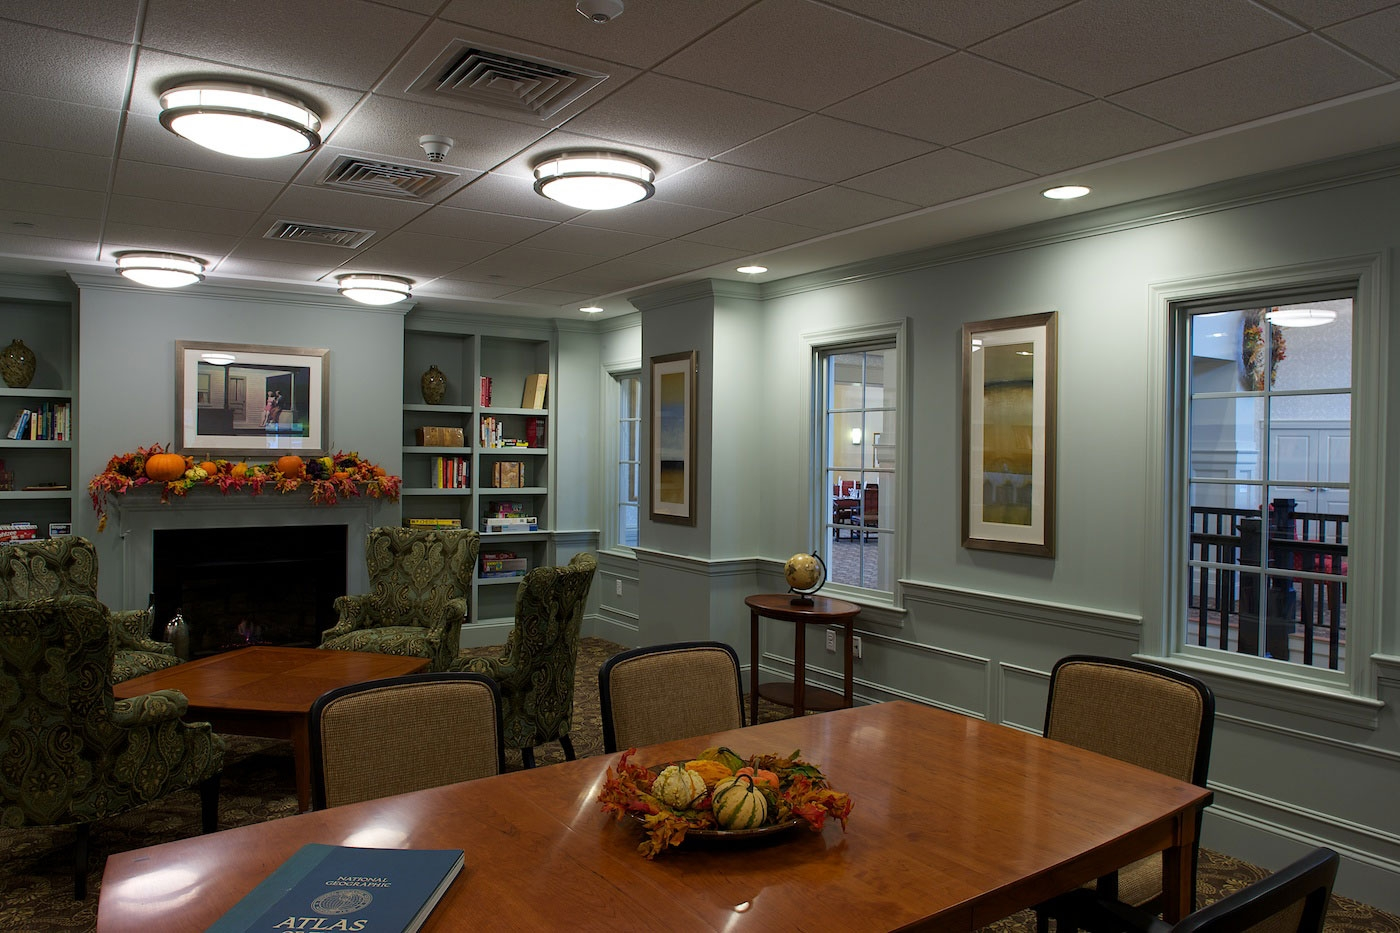 Cozy common seating area designed by WDC for this assisted living community